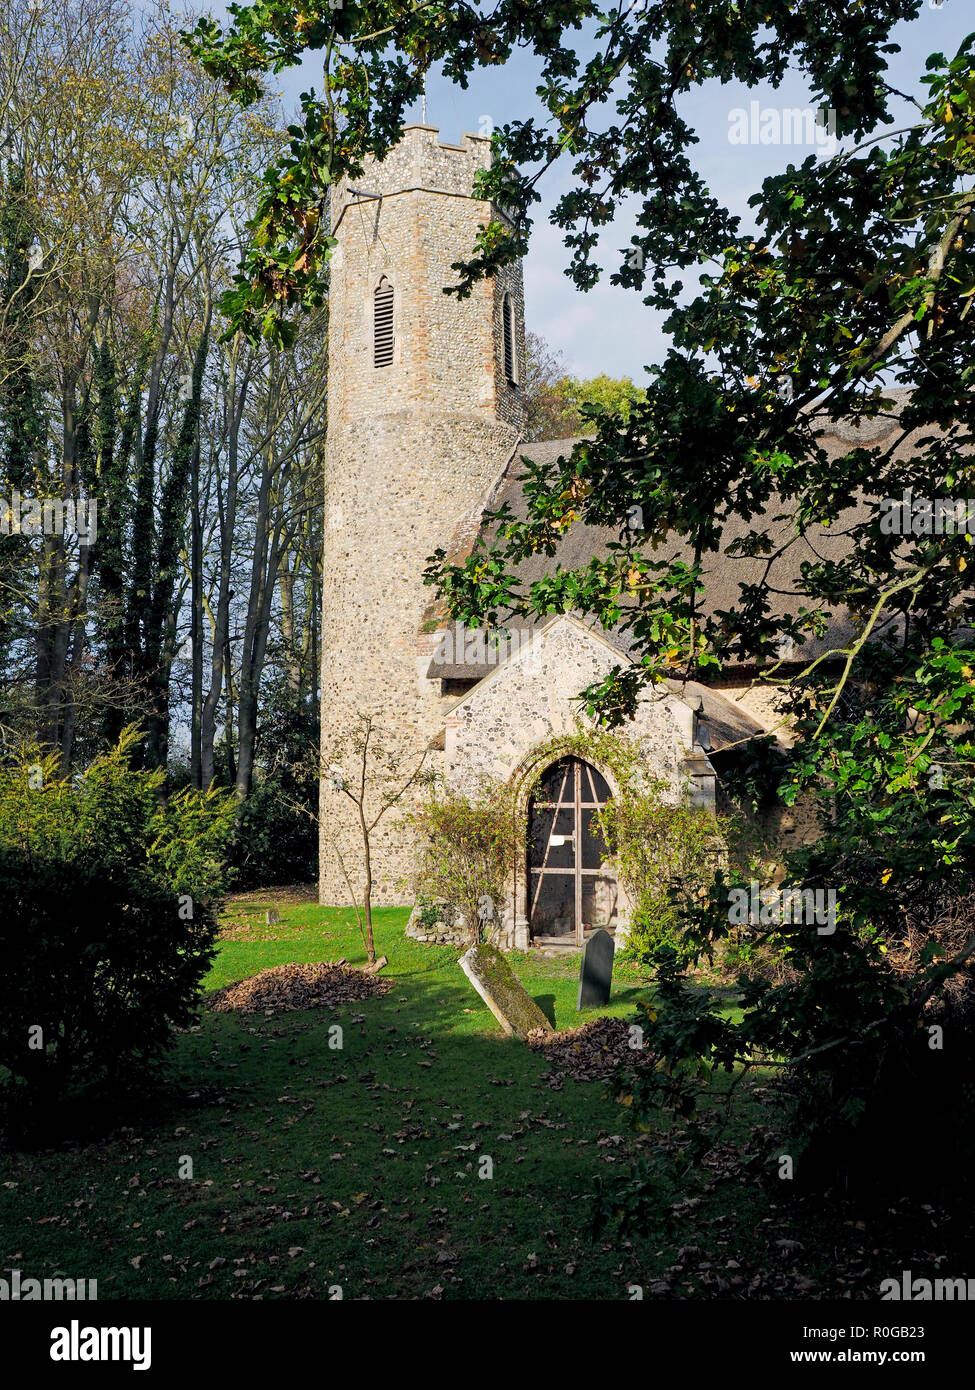 The village church in Horsey, Norfolk is one of many in the county with a round tower rarely found outside East Anglia. Stock Photo